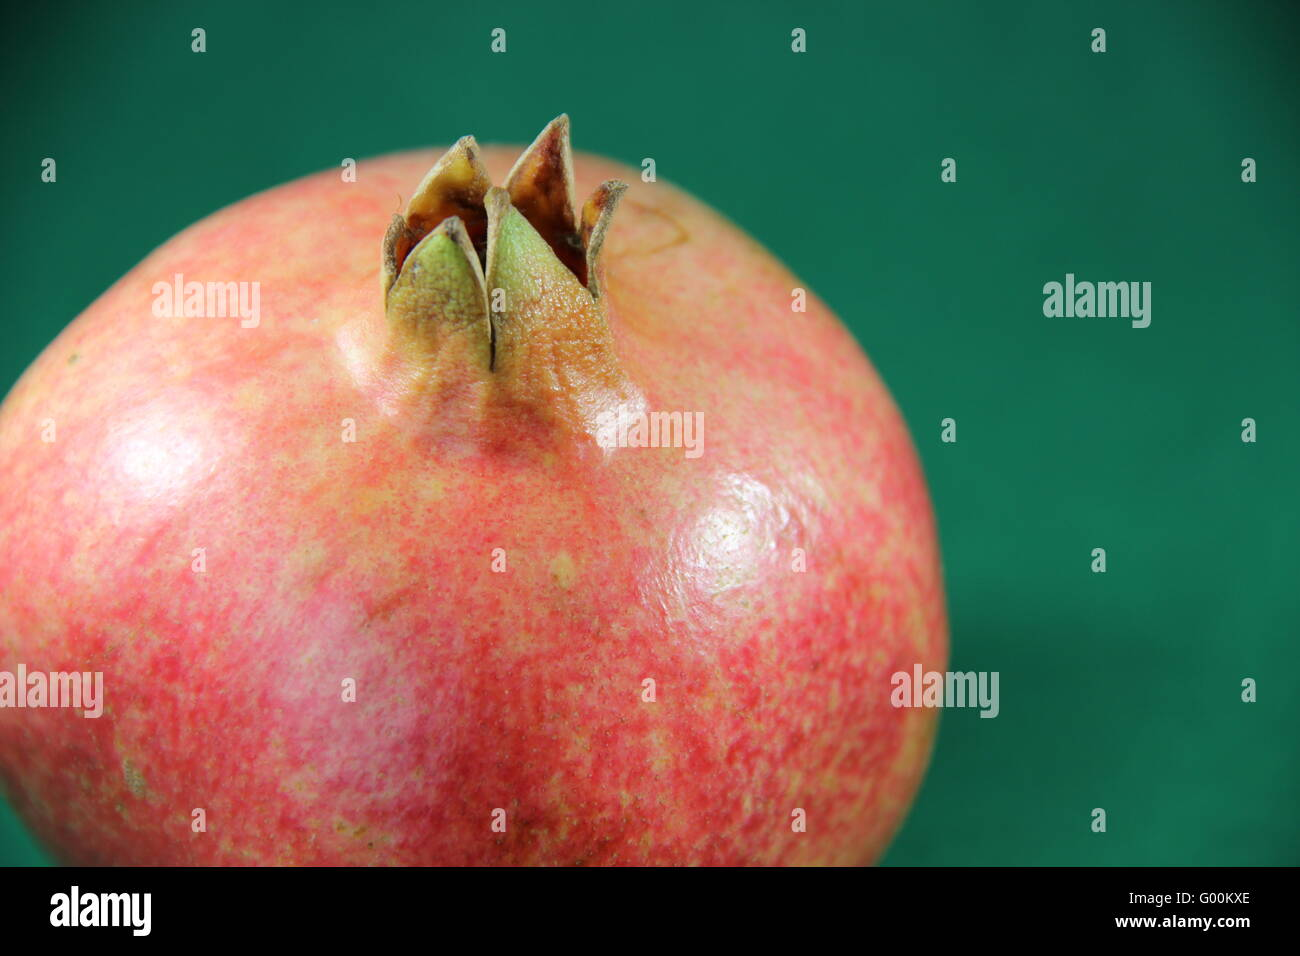 Pomegranate on a neutral background - Stock Image